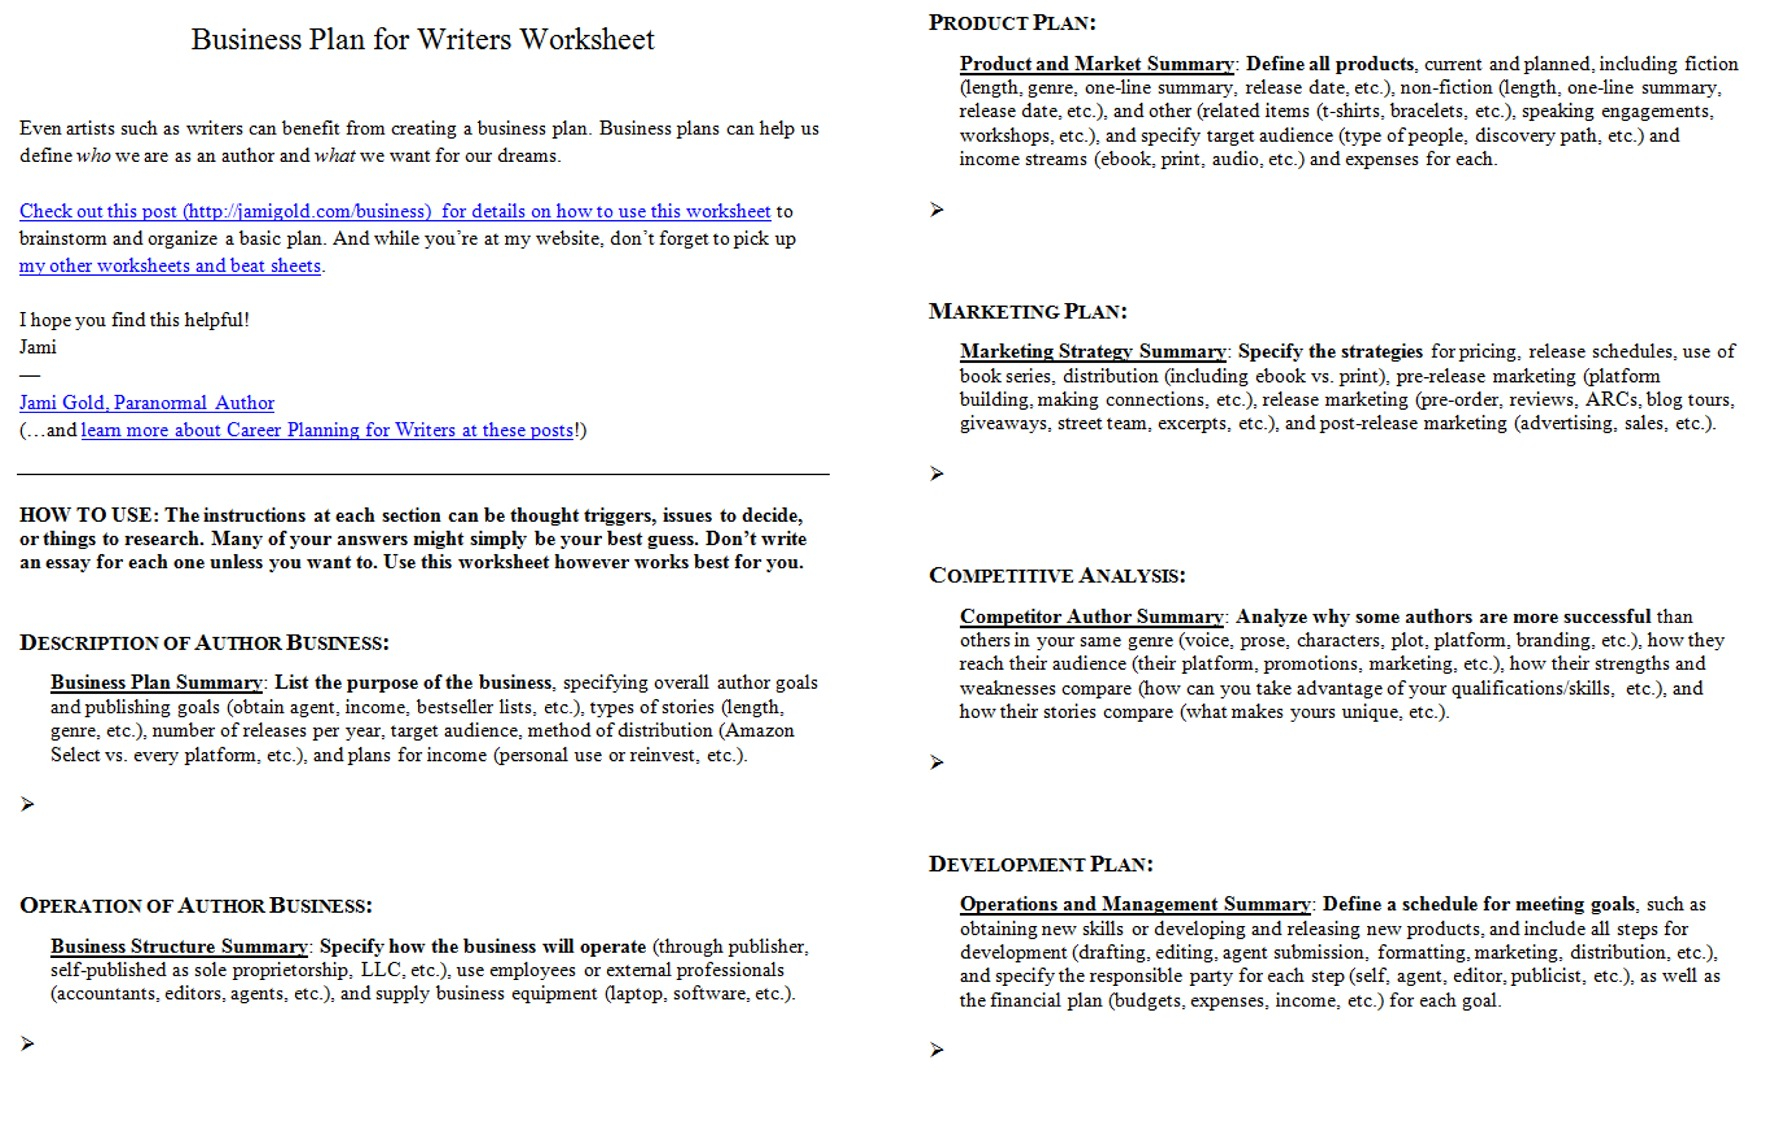 Aldiablosus  Stunning Worksheets For Writers  Jami Gold Paranormal Author With Interesting Screen Shot Of Both Pages Of The Business Plan For Writers Worksheet With Breathtaking Super Techer Worksheets Also Area And Perimeter Worksheet Rd Grade In Addition All About Me Preschool Worksheet And Personal Statement Worksheet As Well As Facts And Details Worksheets Additionally Preschool Number Tracing Worksheets  From Jamigoldcom With Aldiablosus  Interesting Worksheets For Writers  Jami Gold Paranormal Author With Breathtaking Screen Shot Of Both Pages Of The Business Plan For Writers Worksheet And Stunning Super Techer Worksheets Also Area And Perimeter Worksheet Rd Grade In Addition All About Me Preschool Worksheet From Jamigoldcom